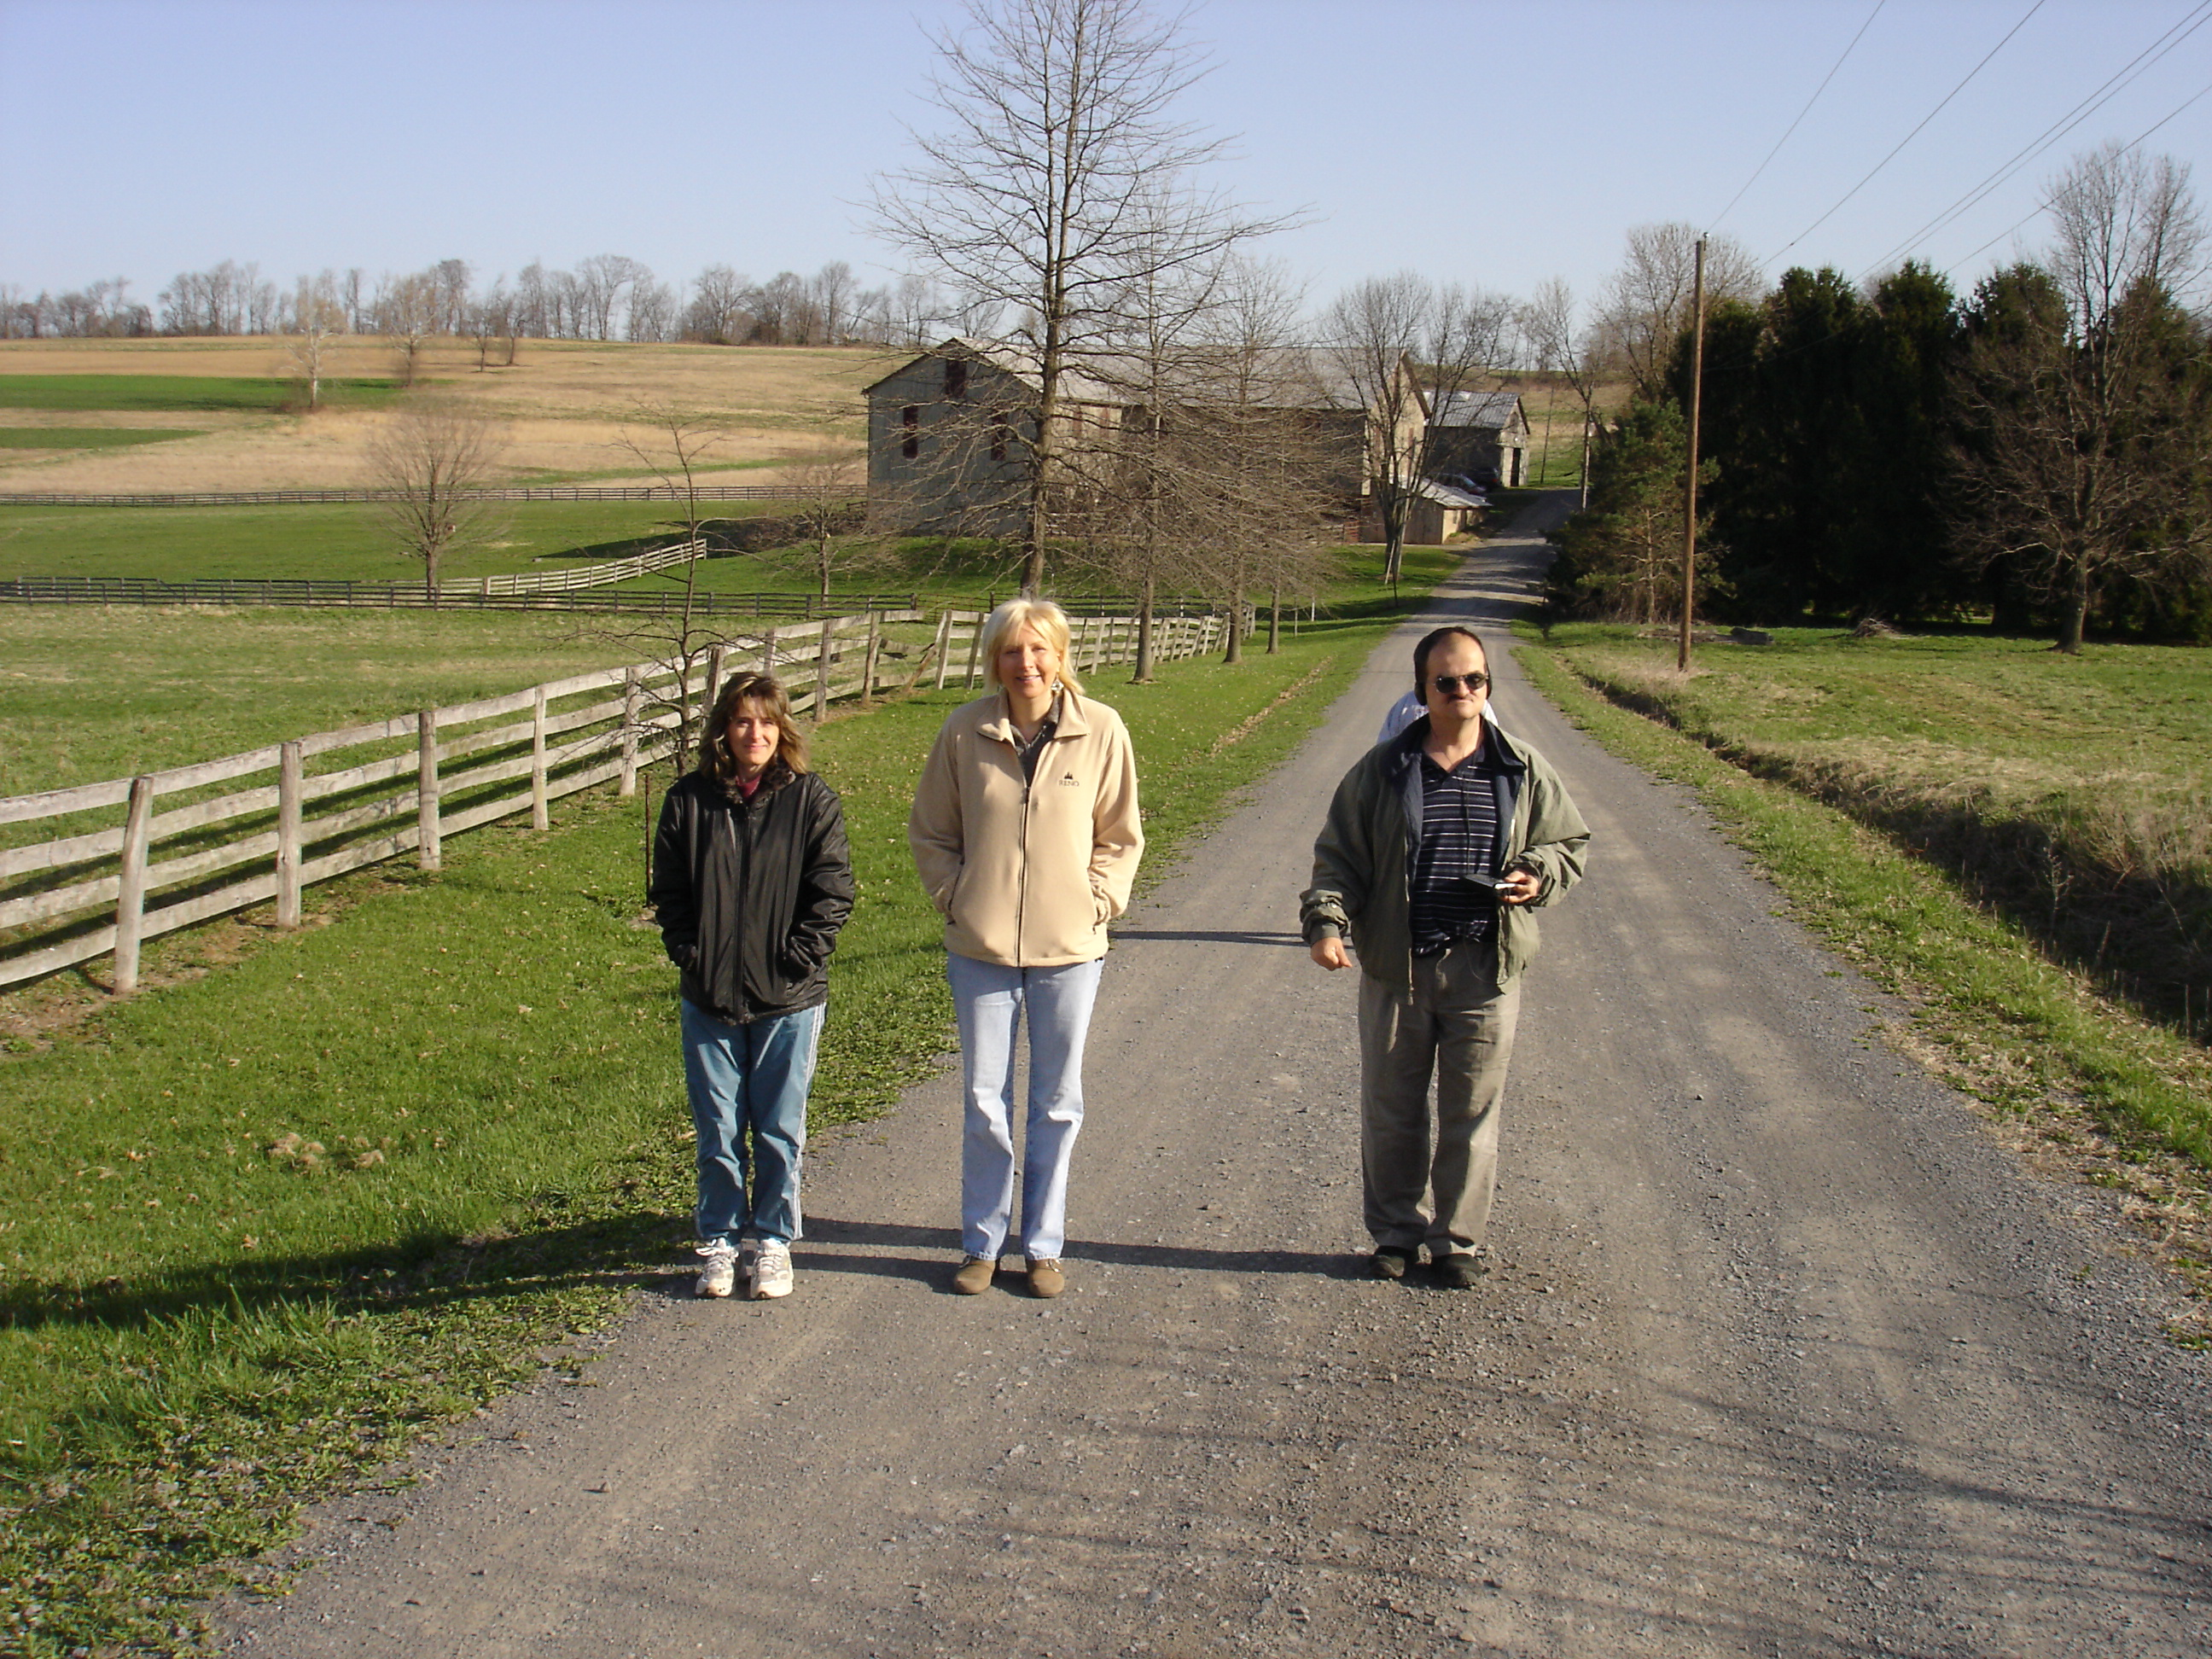 Michelle, Donna, & George take time for a walk during the retreat